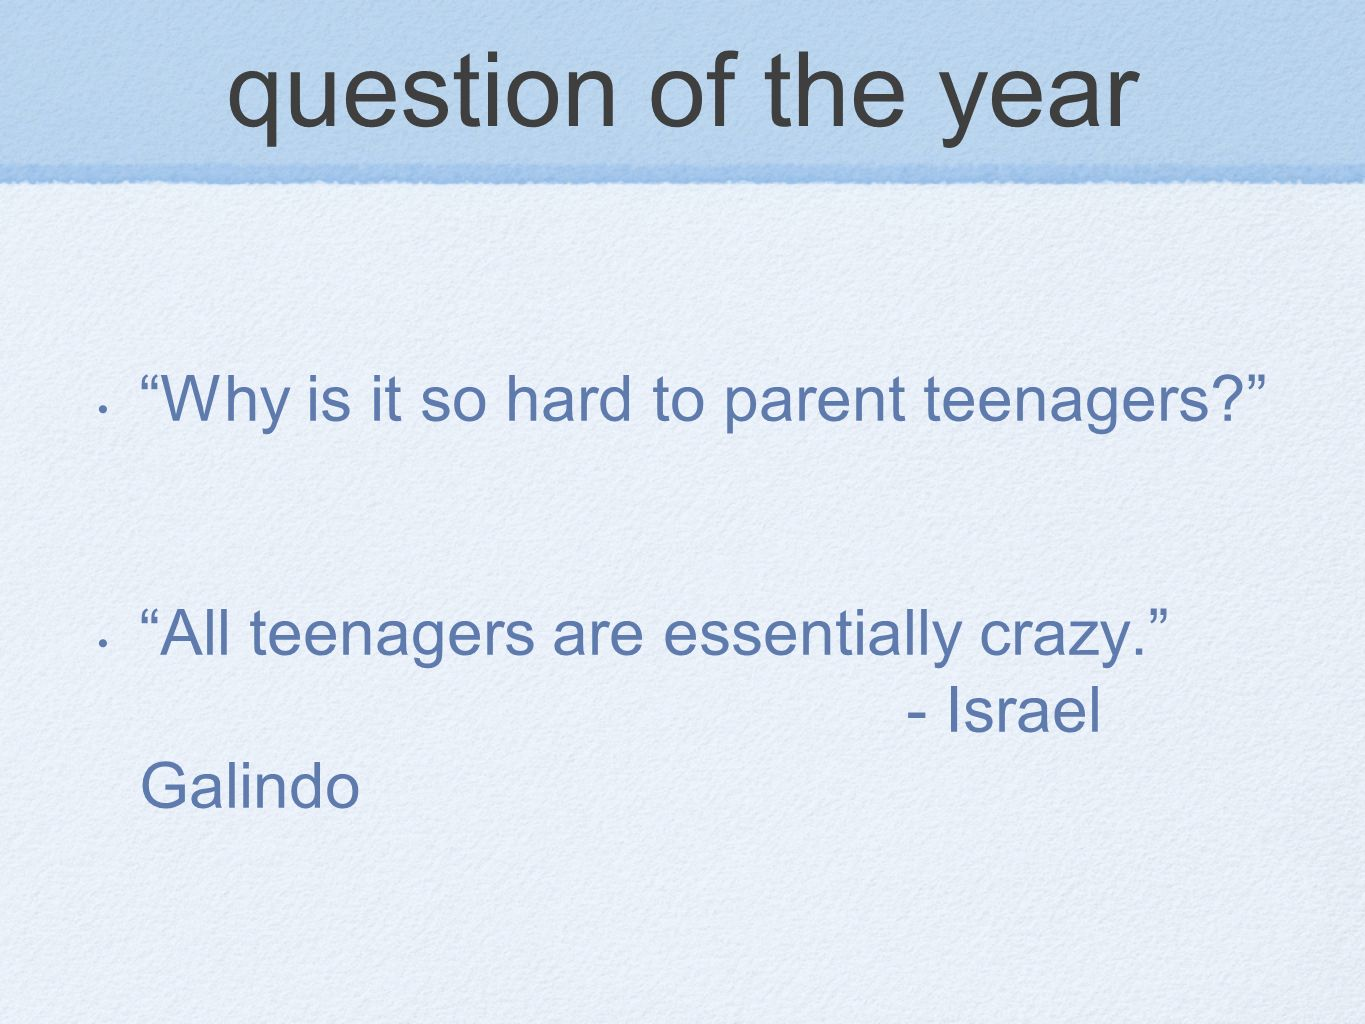 question of the year Why is it so hard to parent teenagers? All teenagers are essentially crazy. - Israel Galindo